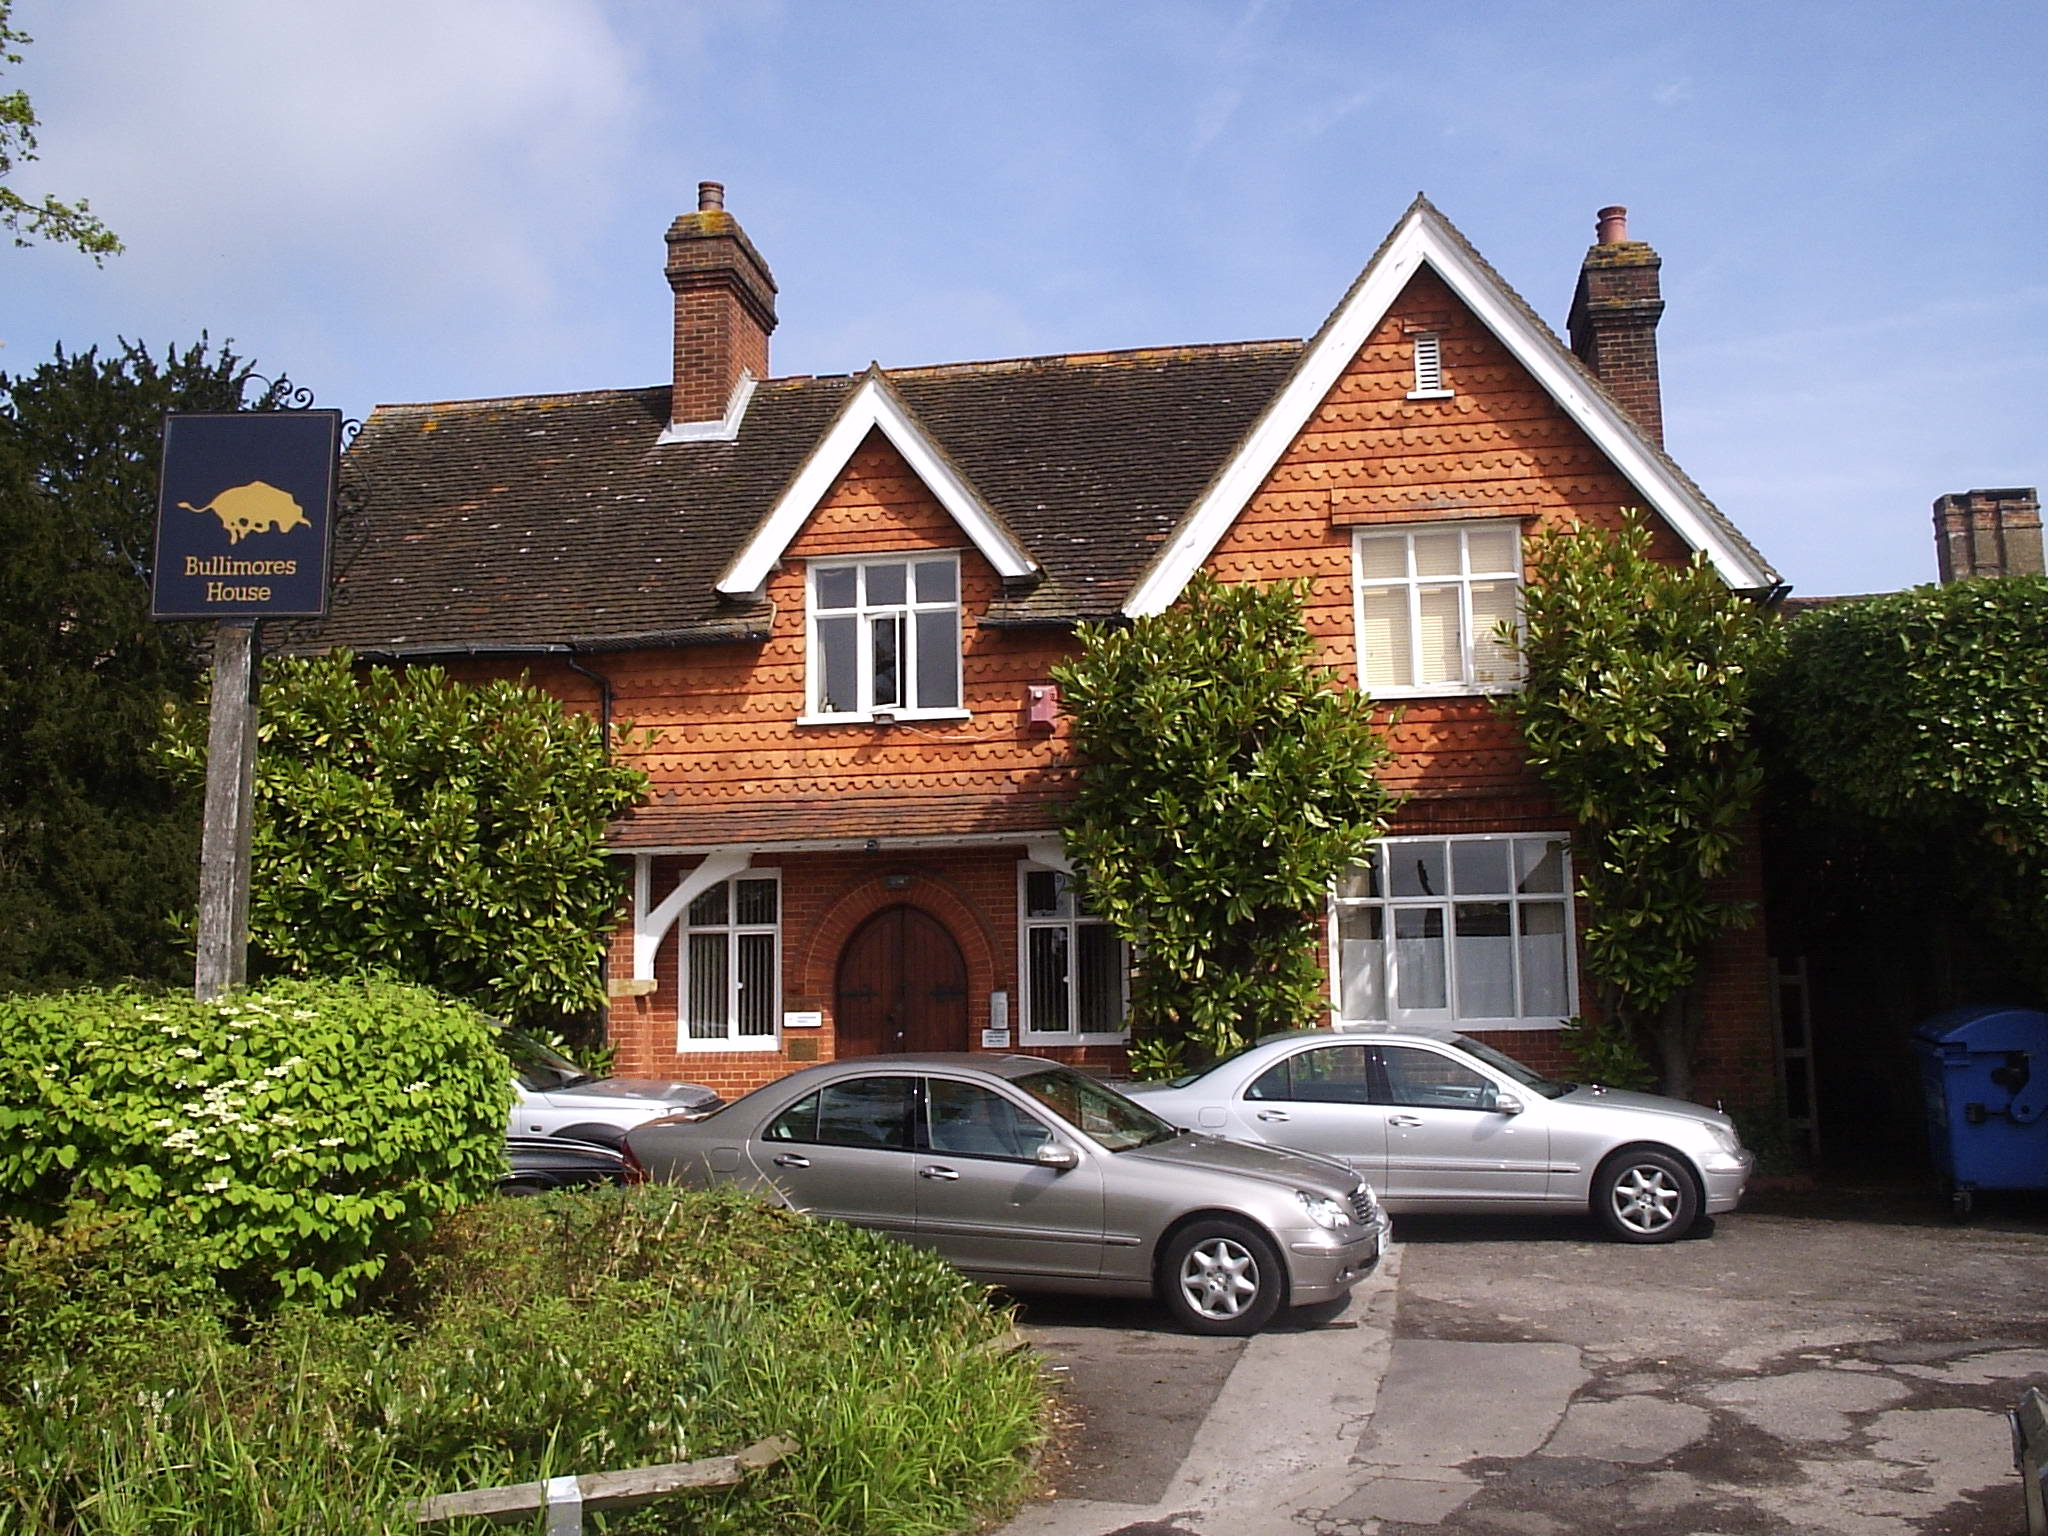 BULLIMORES HOUSE (SUITE 8), Church Lane, CRANLEIGH - LETTING